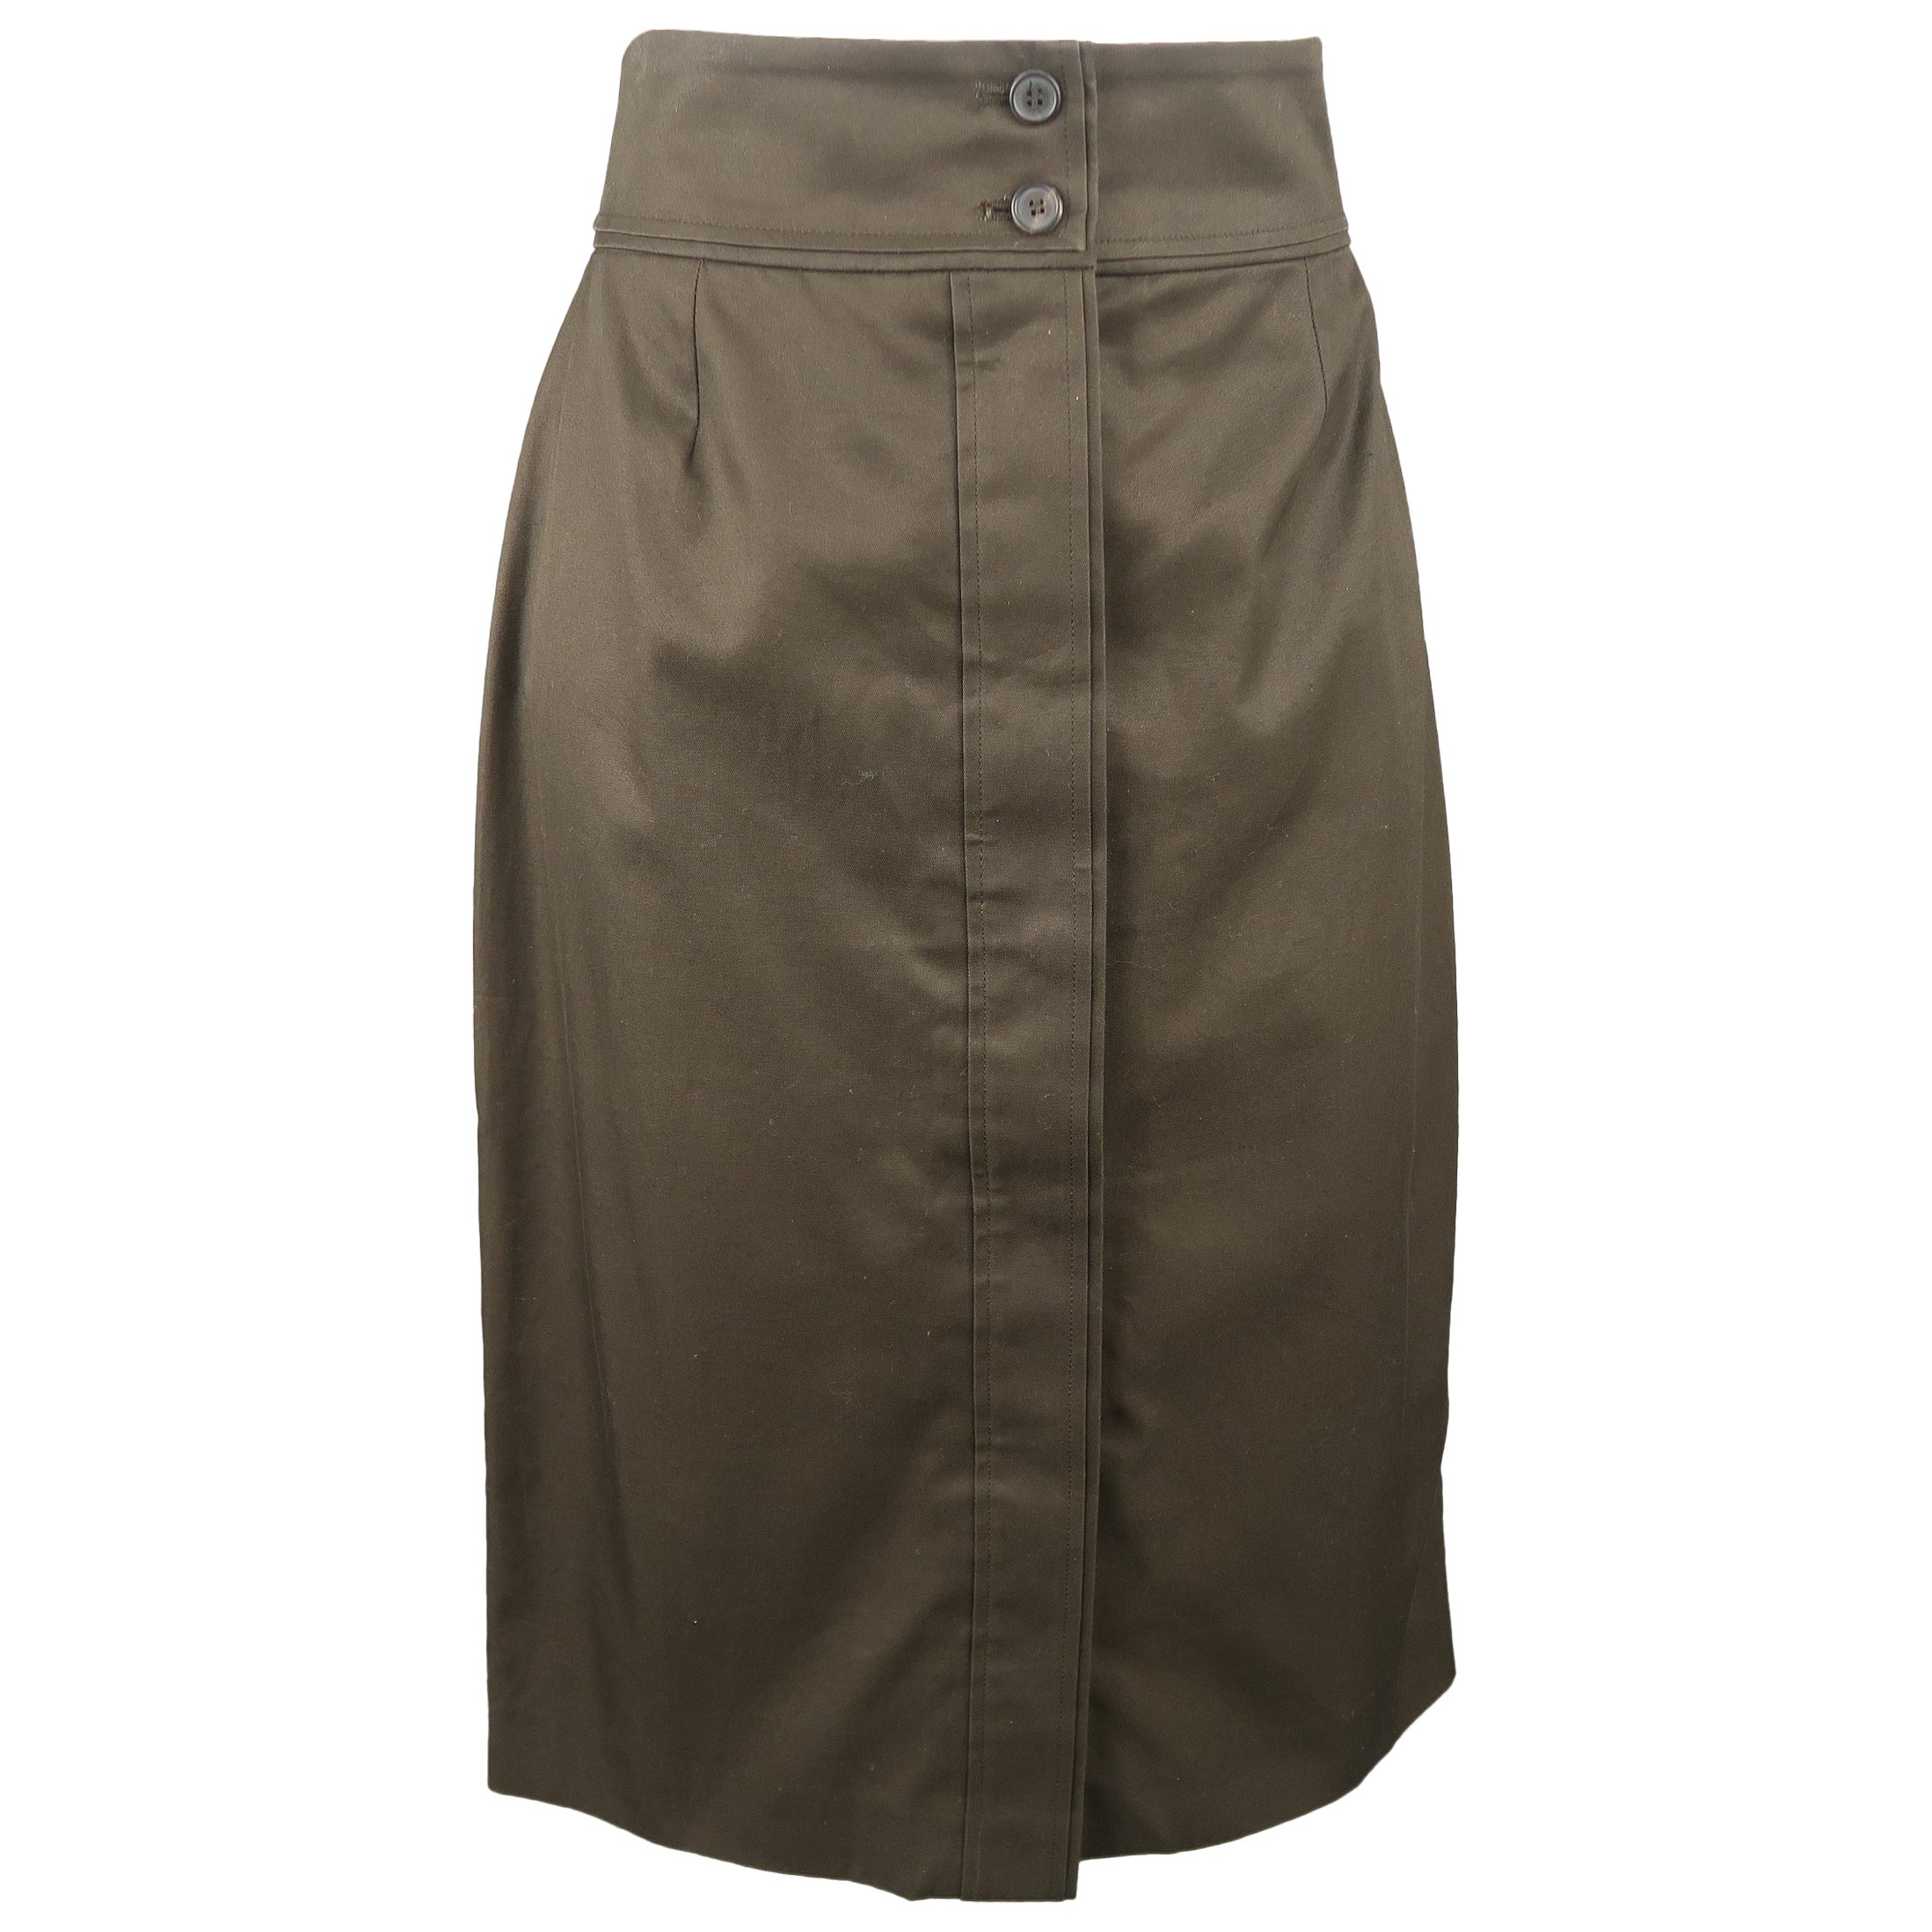 Yves Saint Laurent By Tom Ford Dark Green Cotton Pencil Skirt